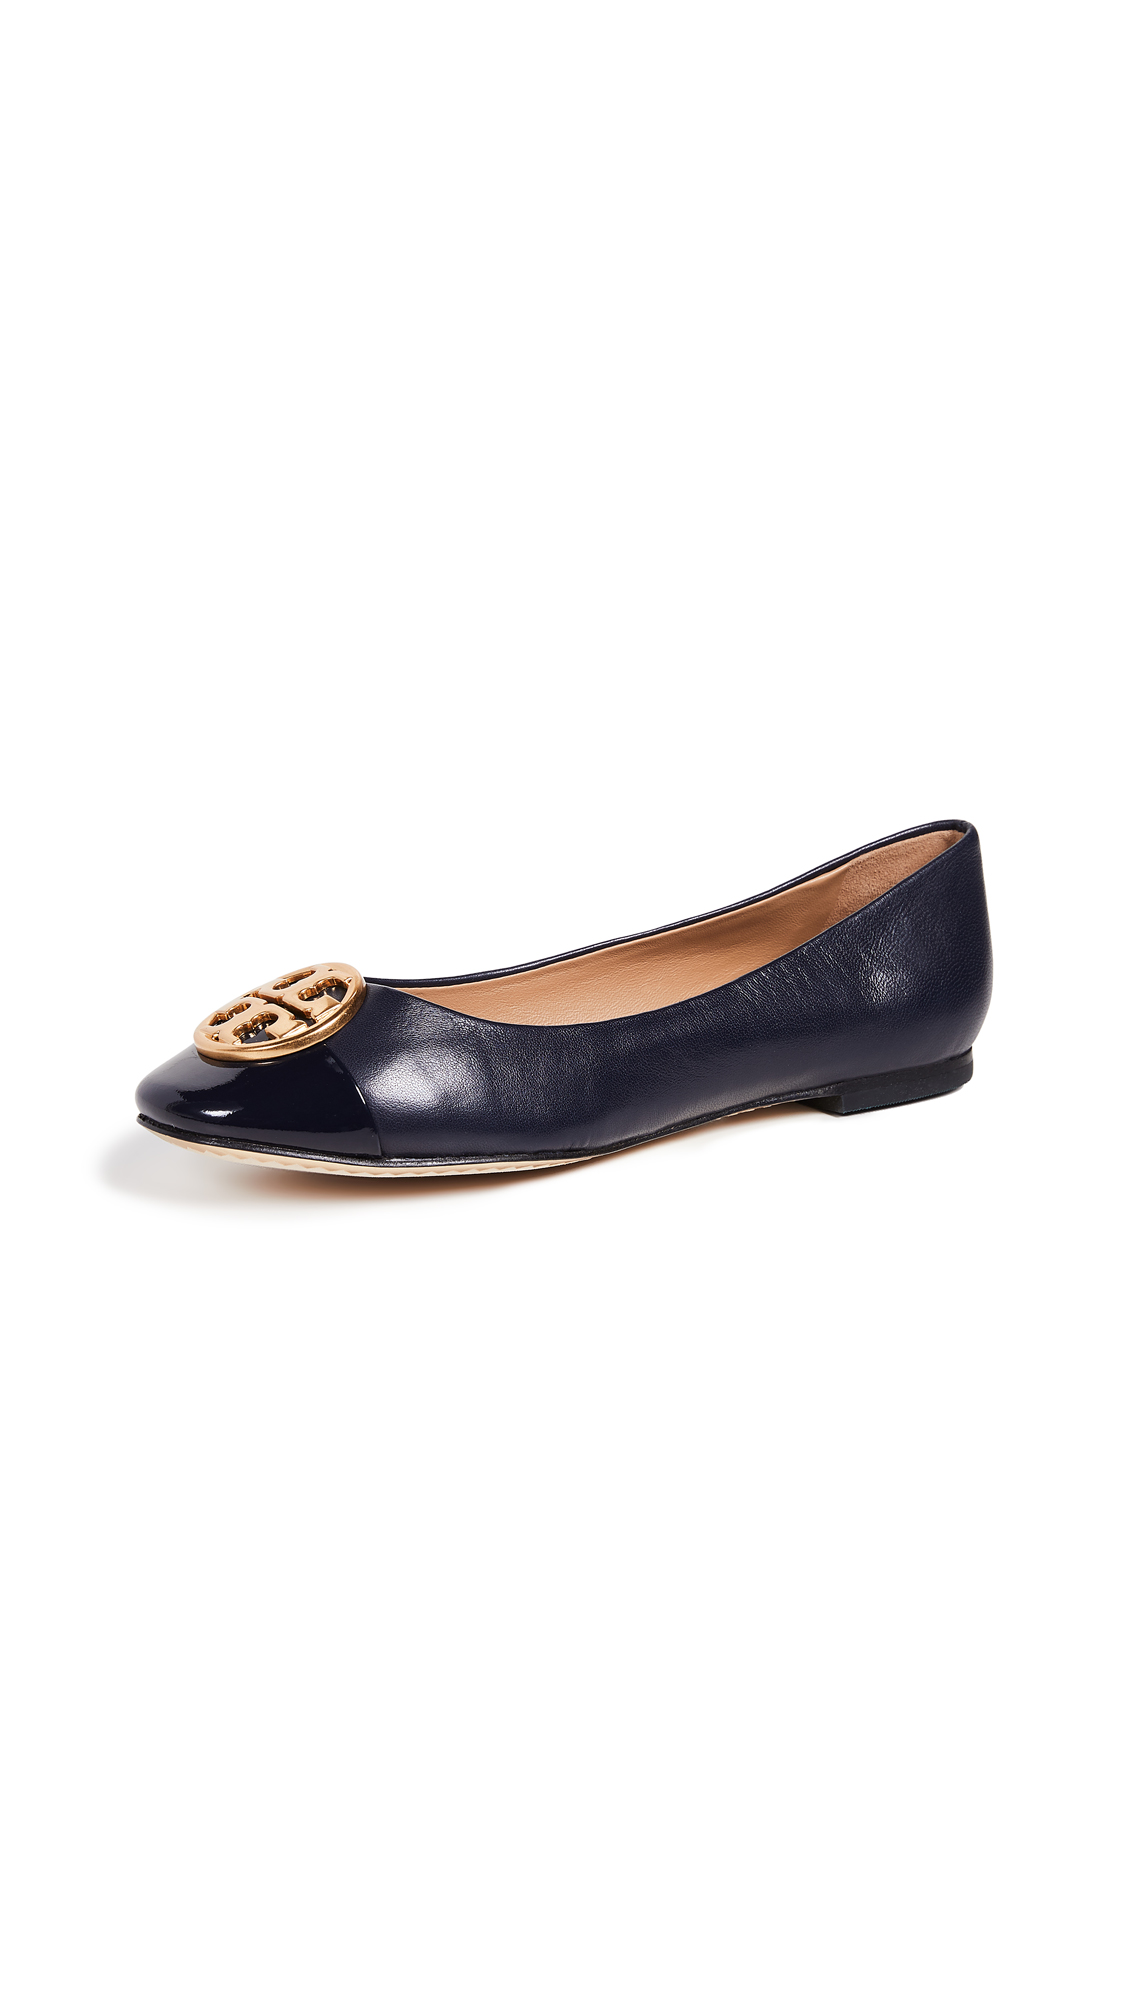 Tory Burch Chelsea Ballet Flats - Perfect Navy